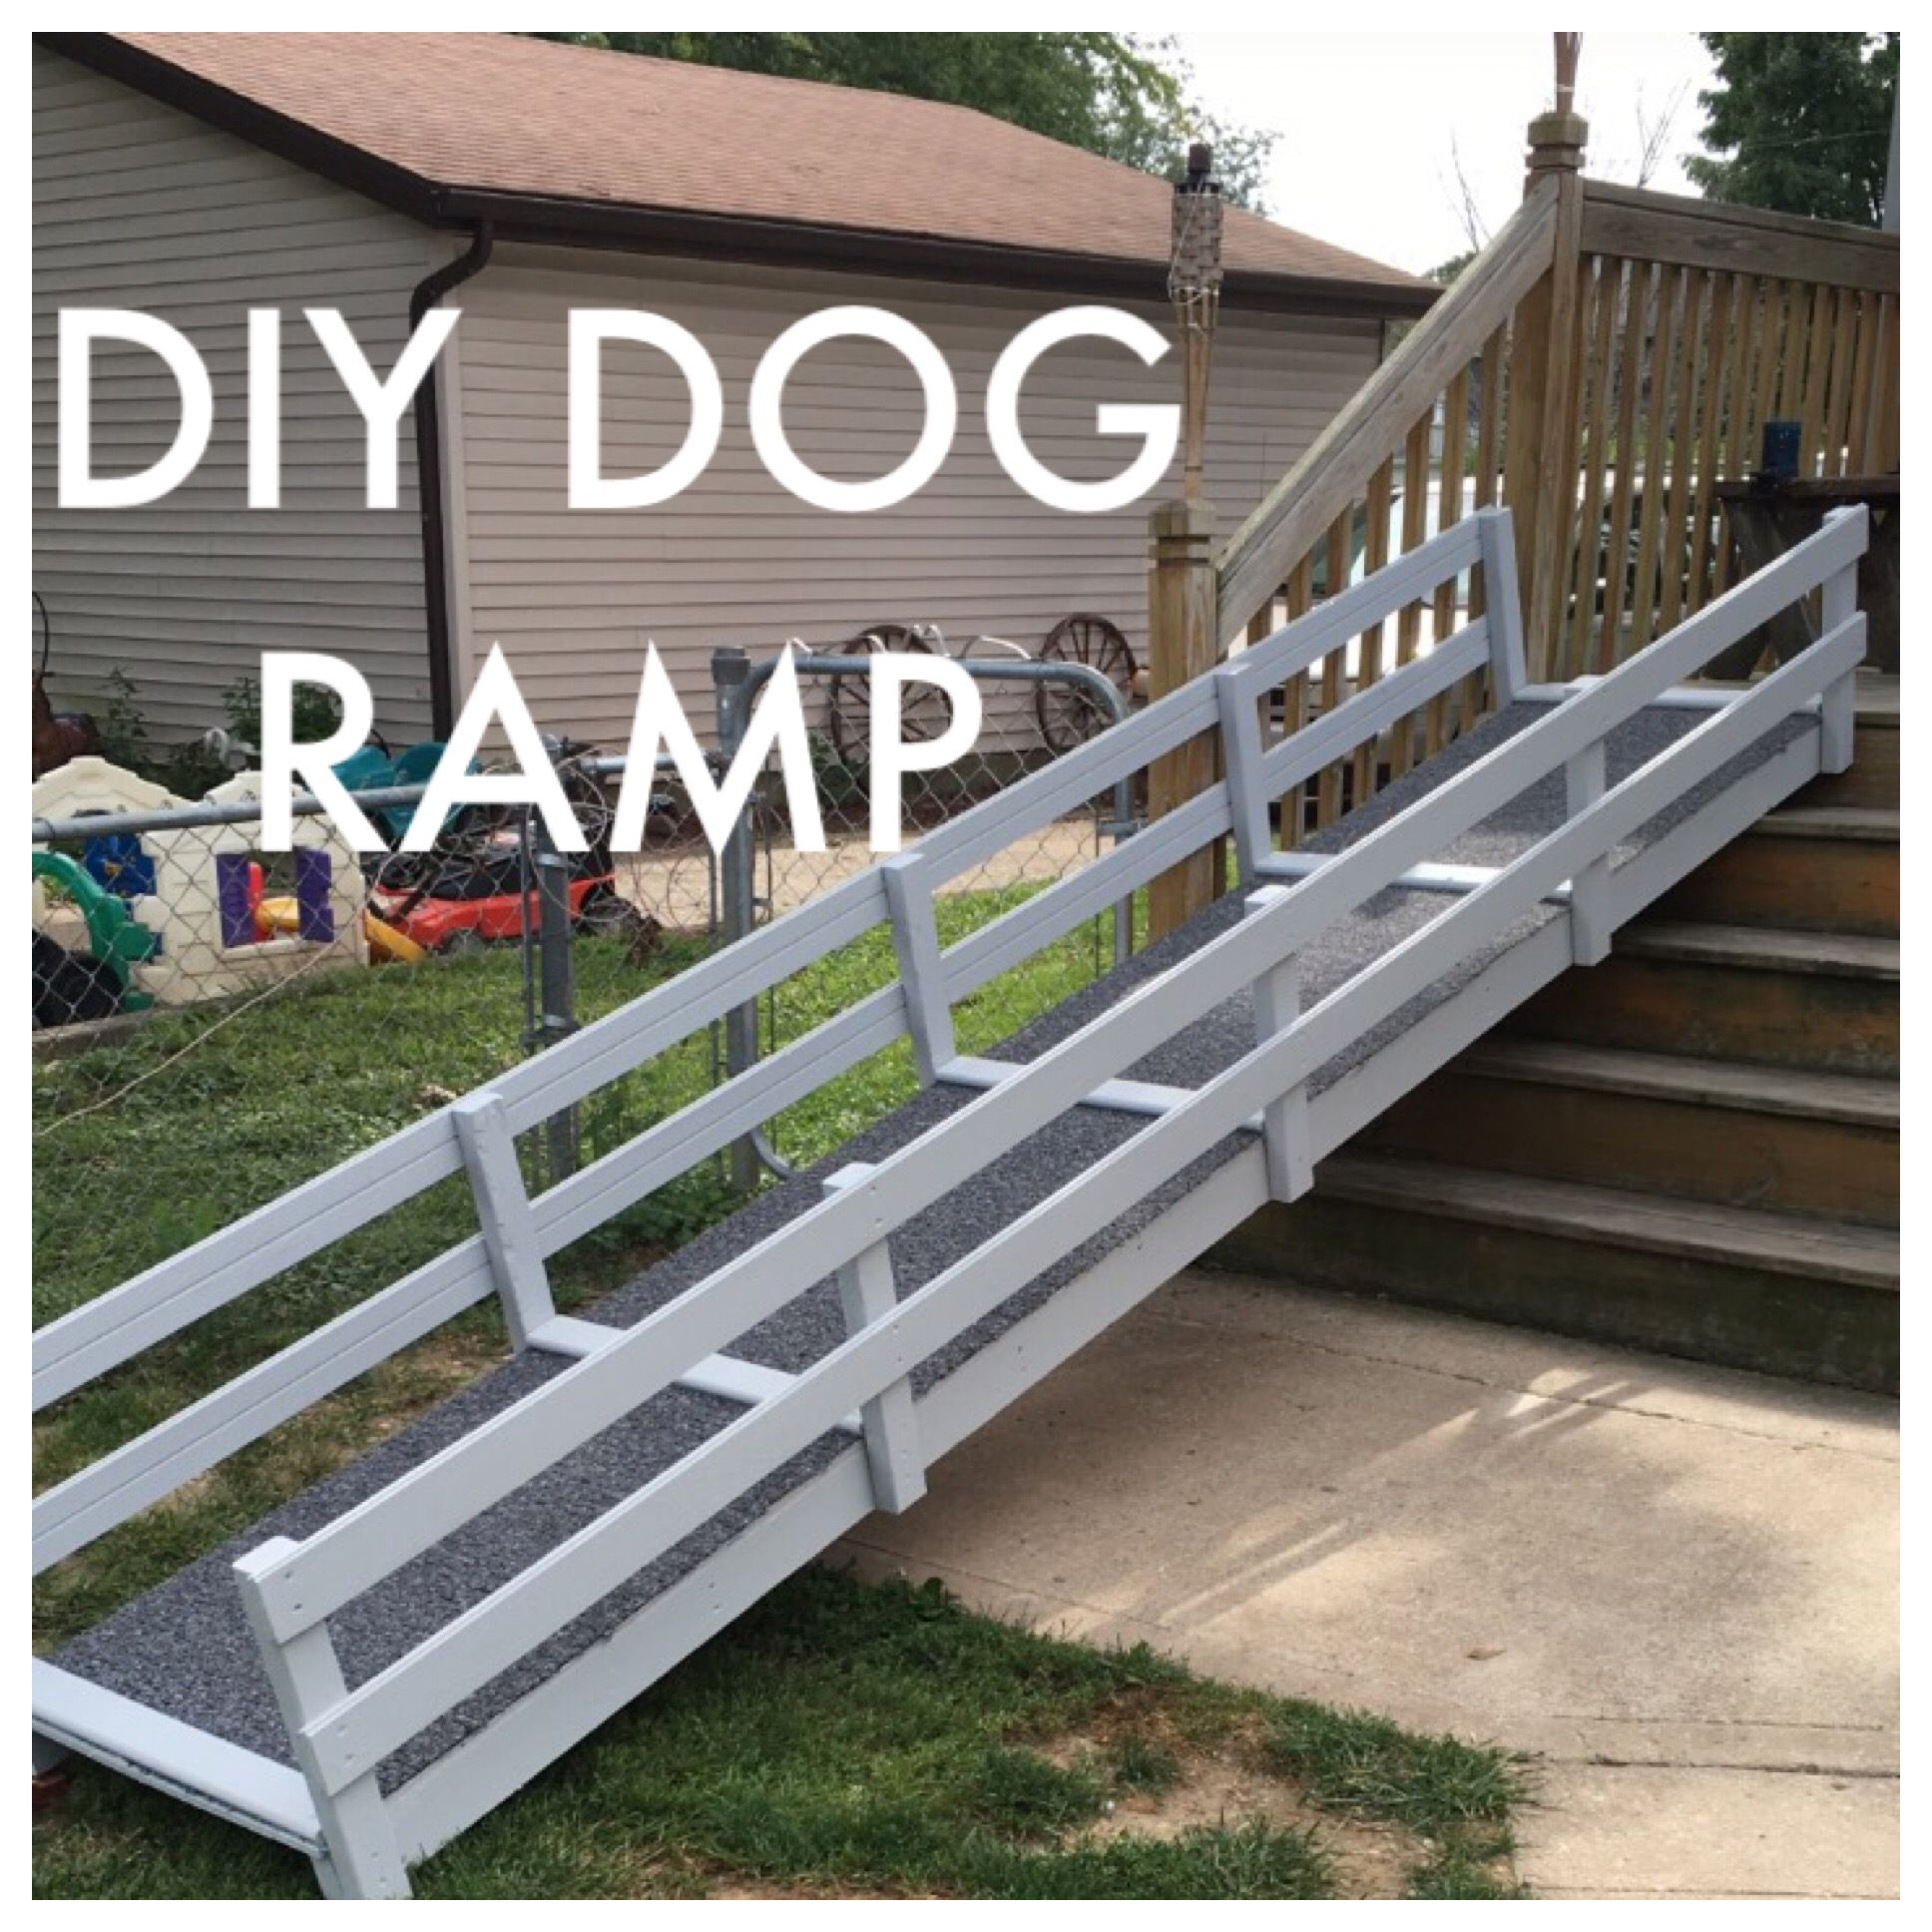 Diy Dog Ramp Over Stairs Dog Ramp Diy Dog Ramp Pinteres